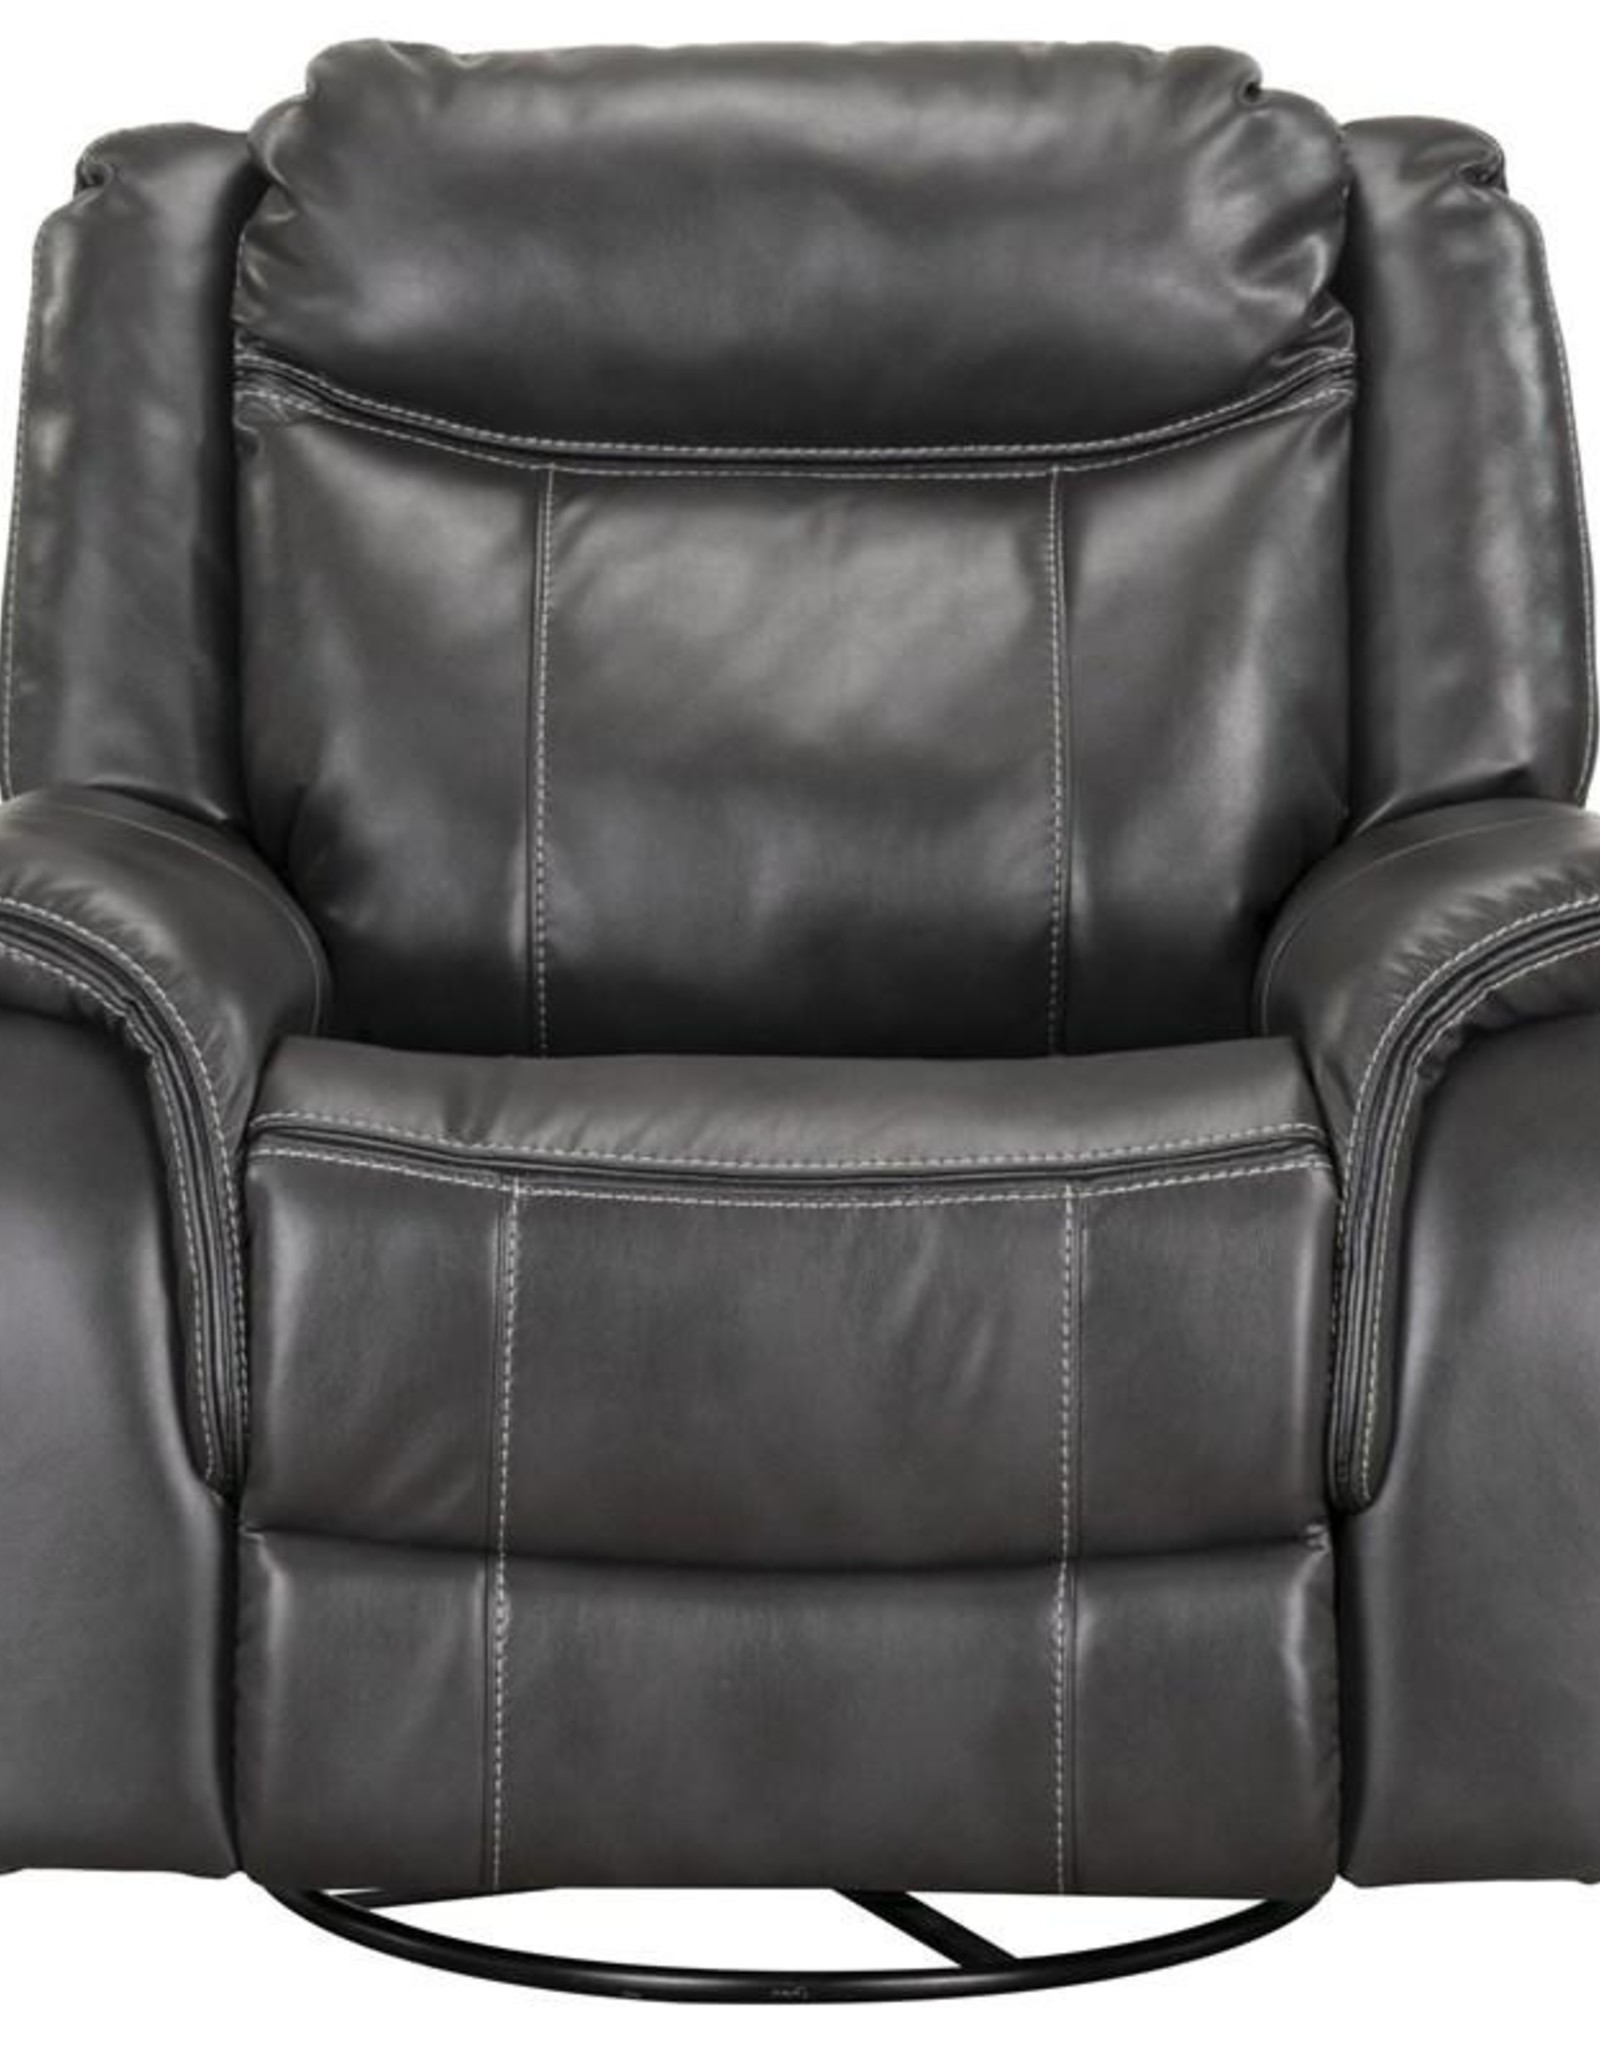 Standard Avalon Recliner